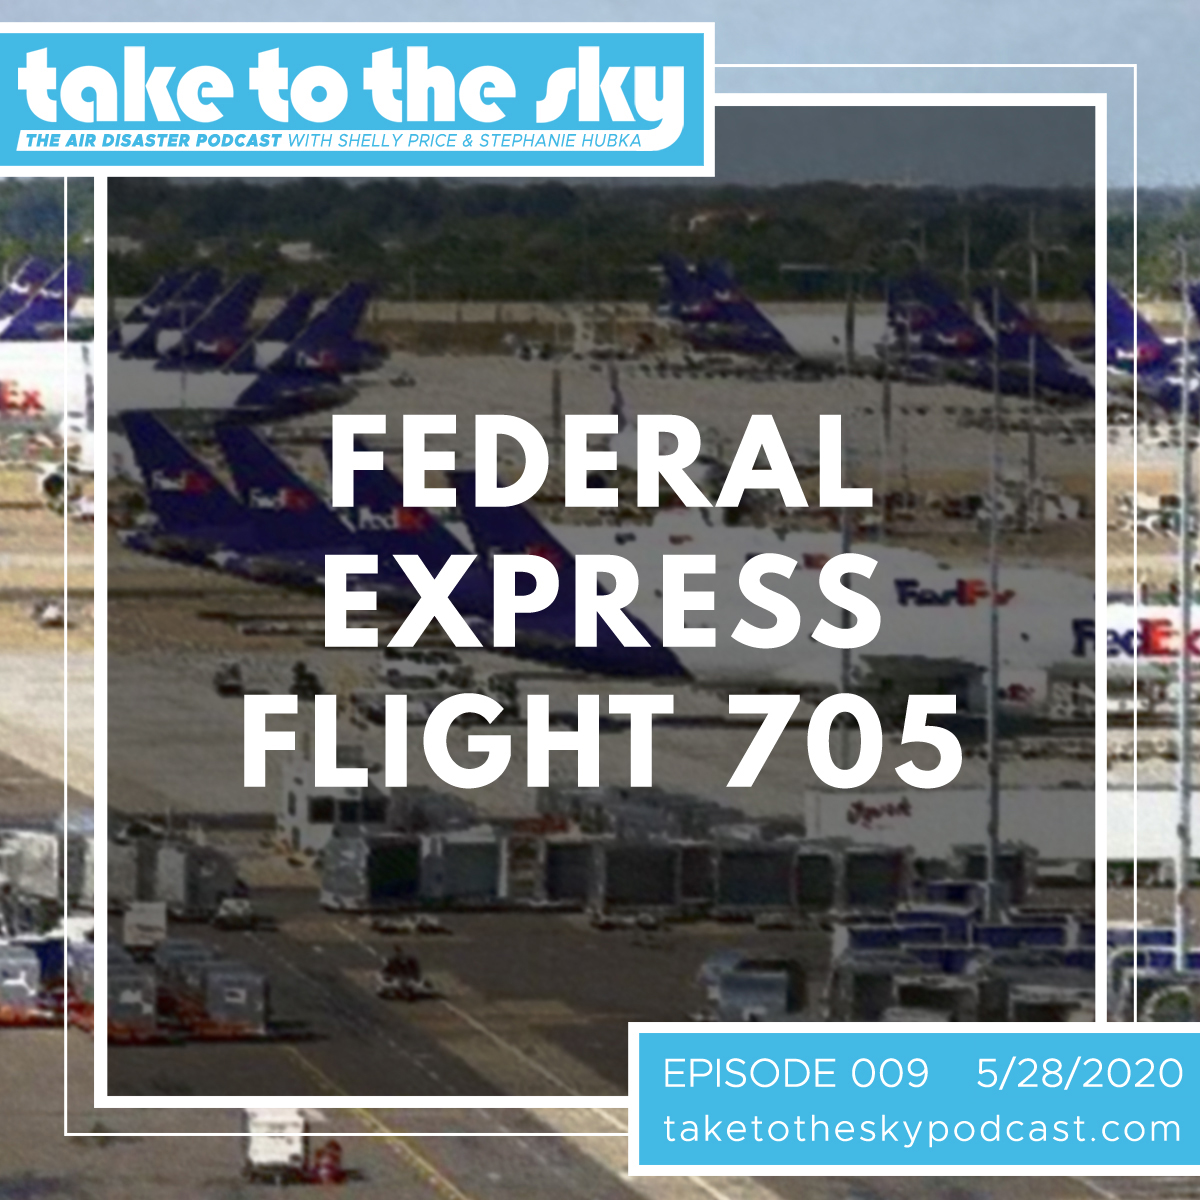 Take to the Sky Episode 009: Federal Express Flight 705